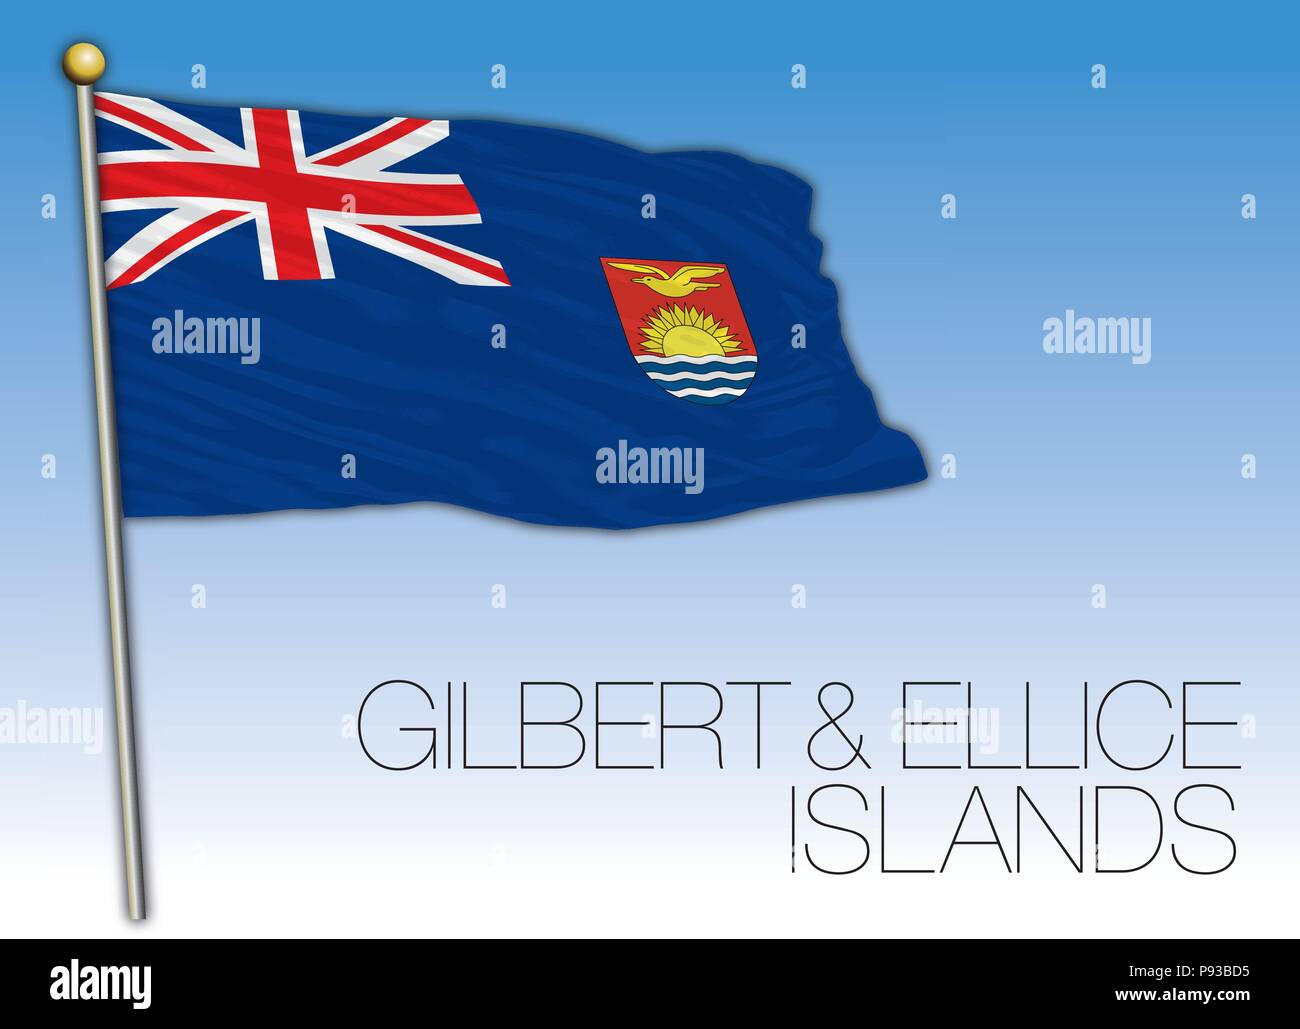 Gilbert and Ellice islands flag - Stock Image